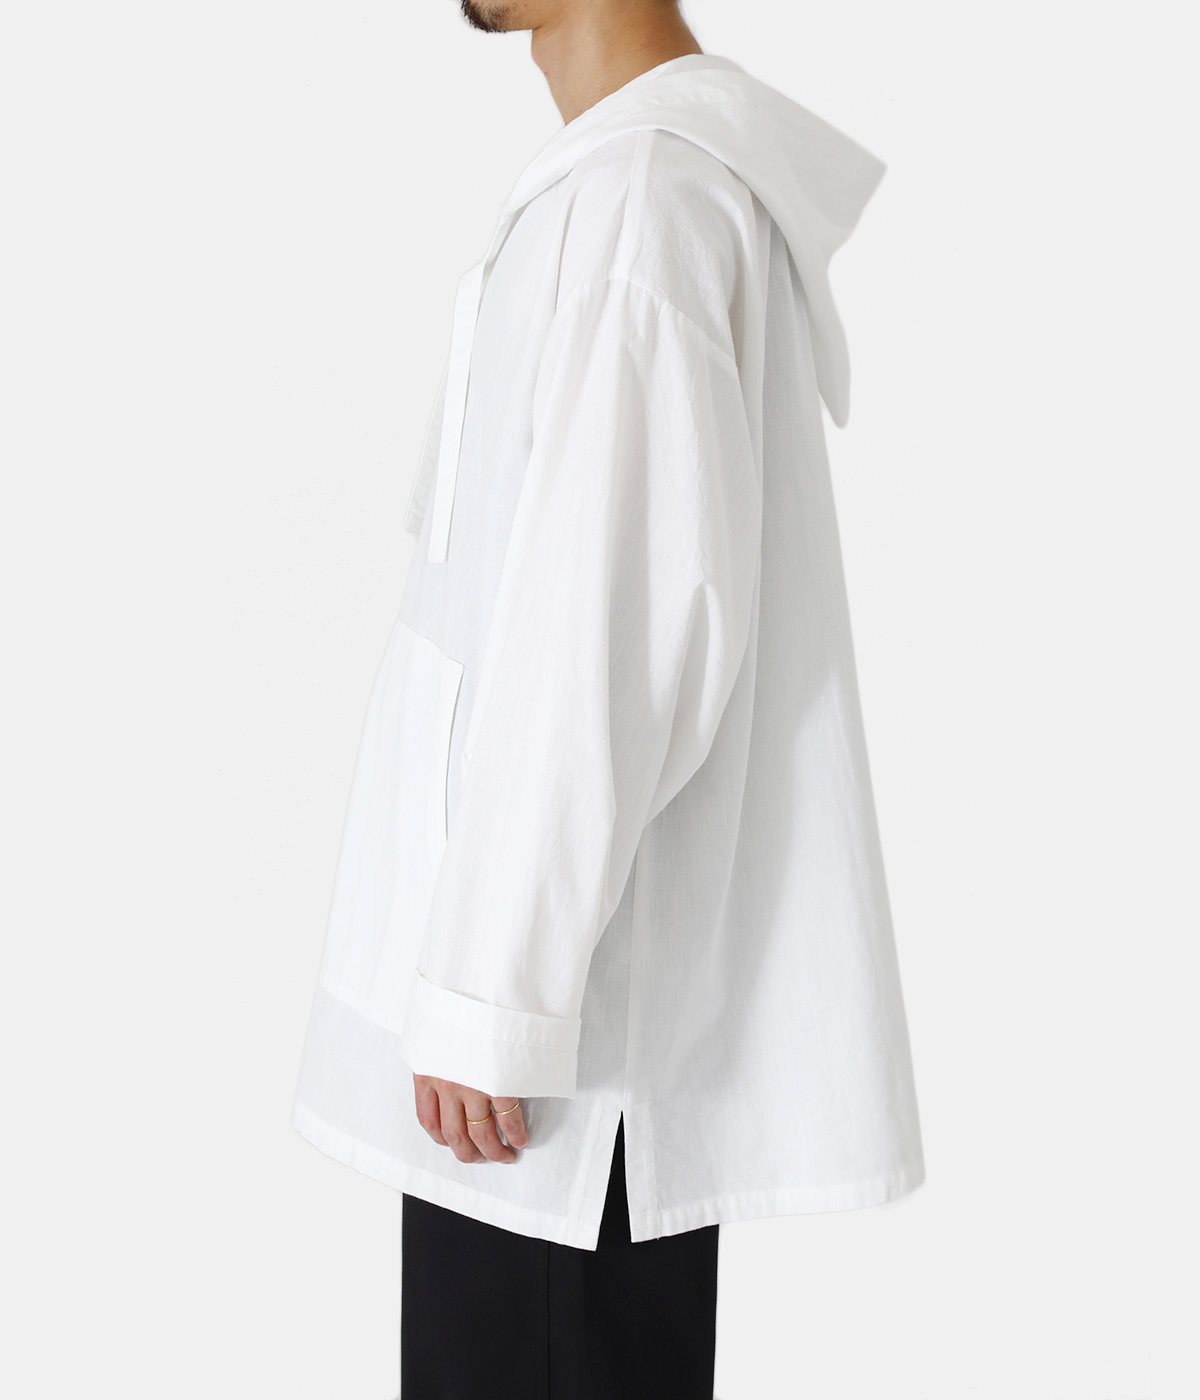 【ONLY ARK】別注 Chambrey Mexican Parka